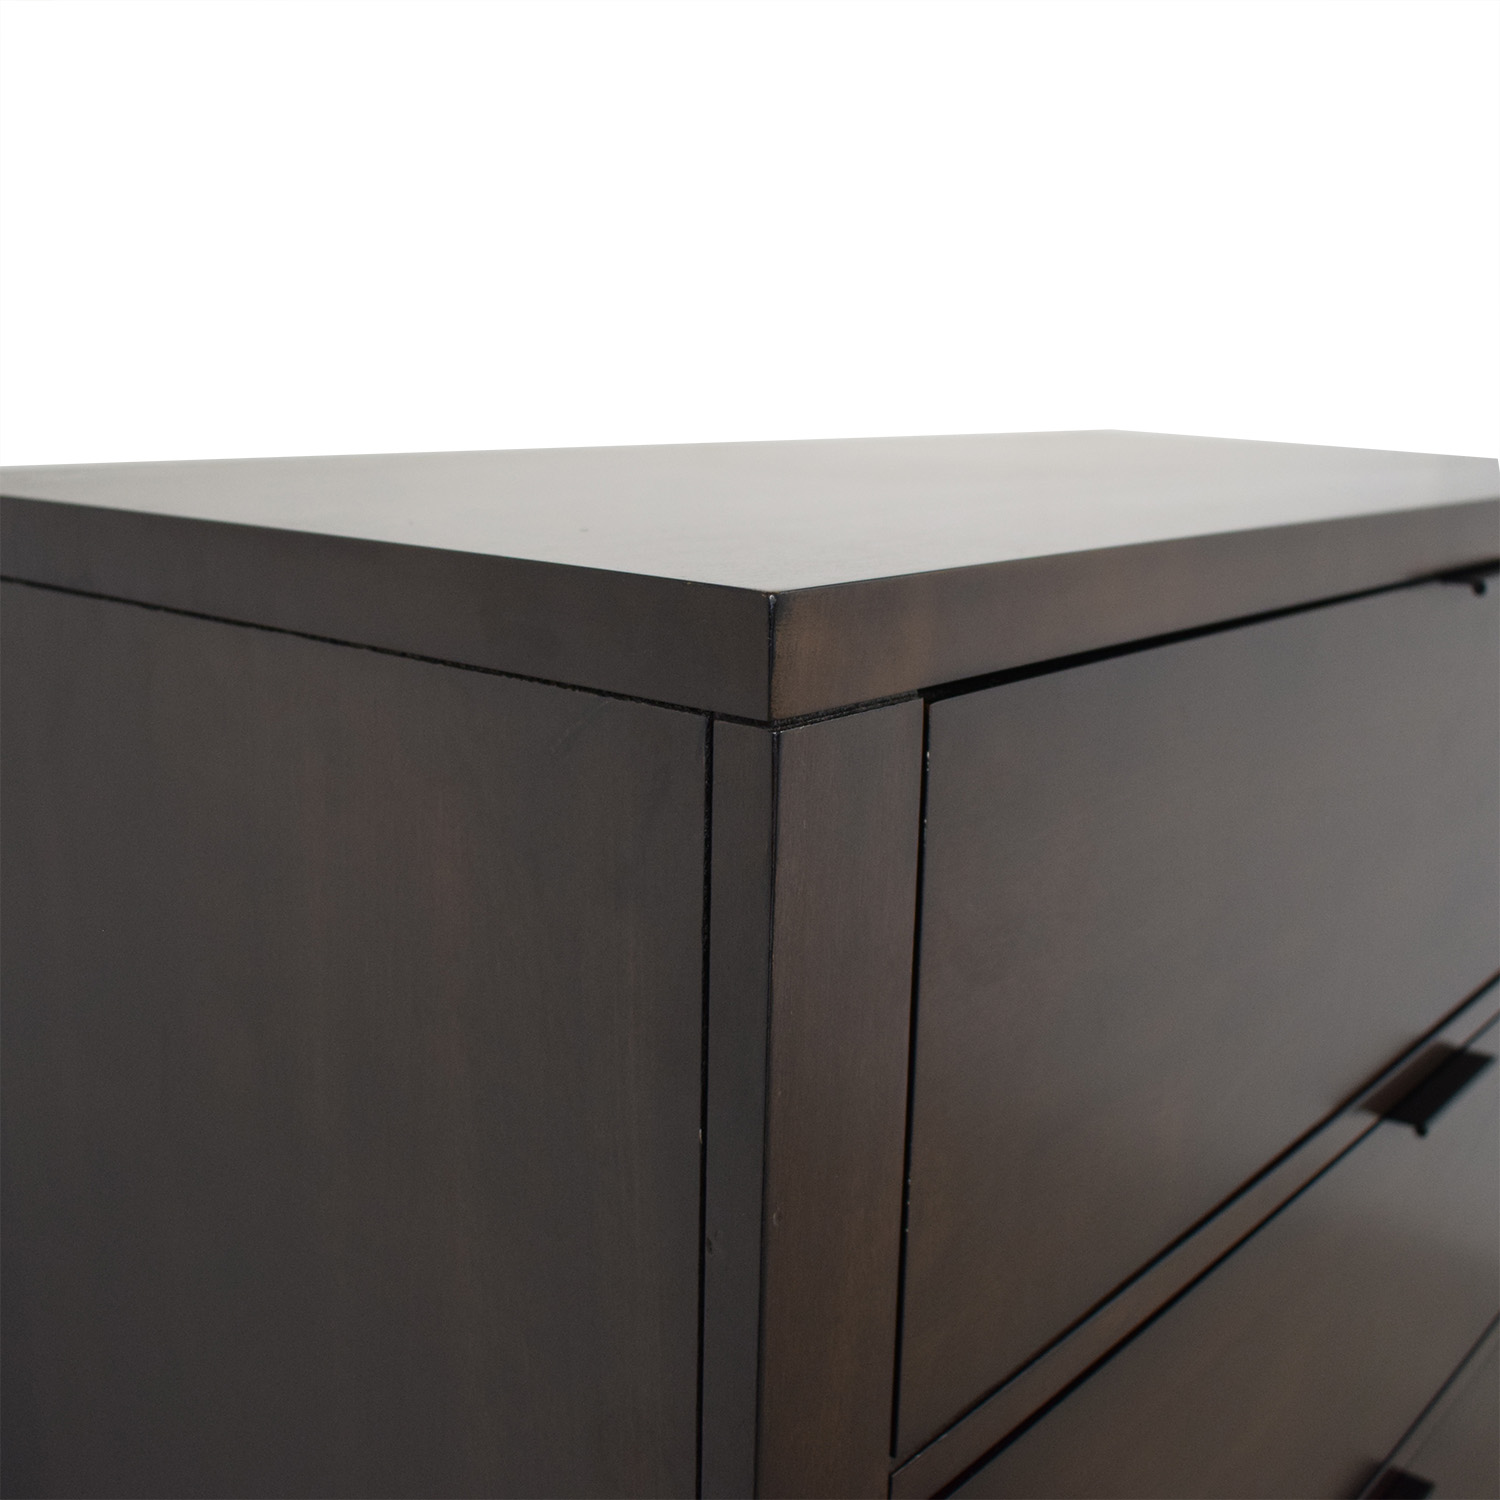 Macy's Macy's Tribeca Five Drawer Chest on sale